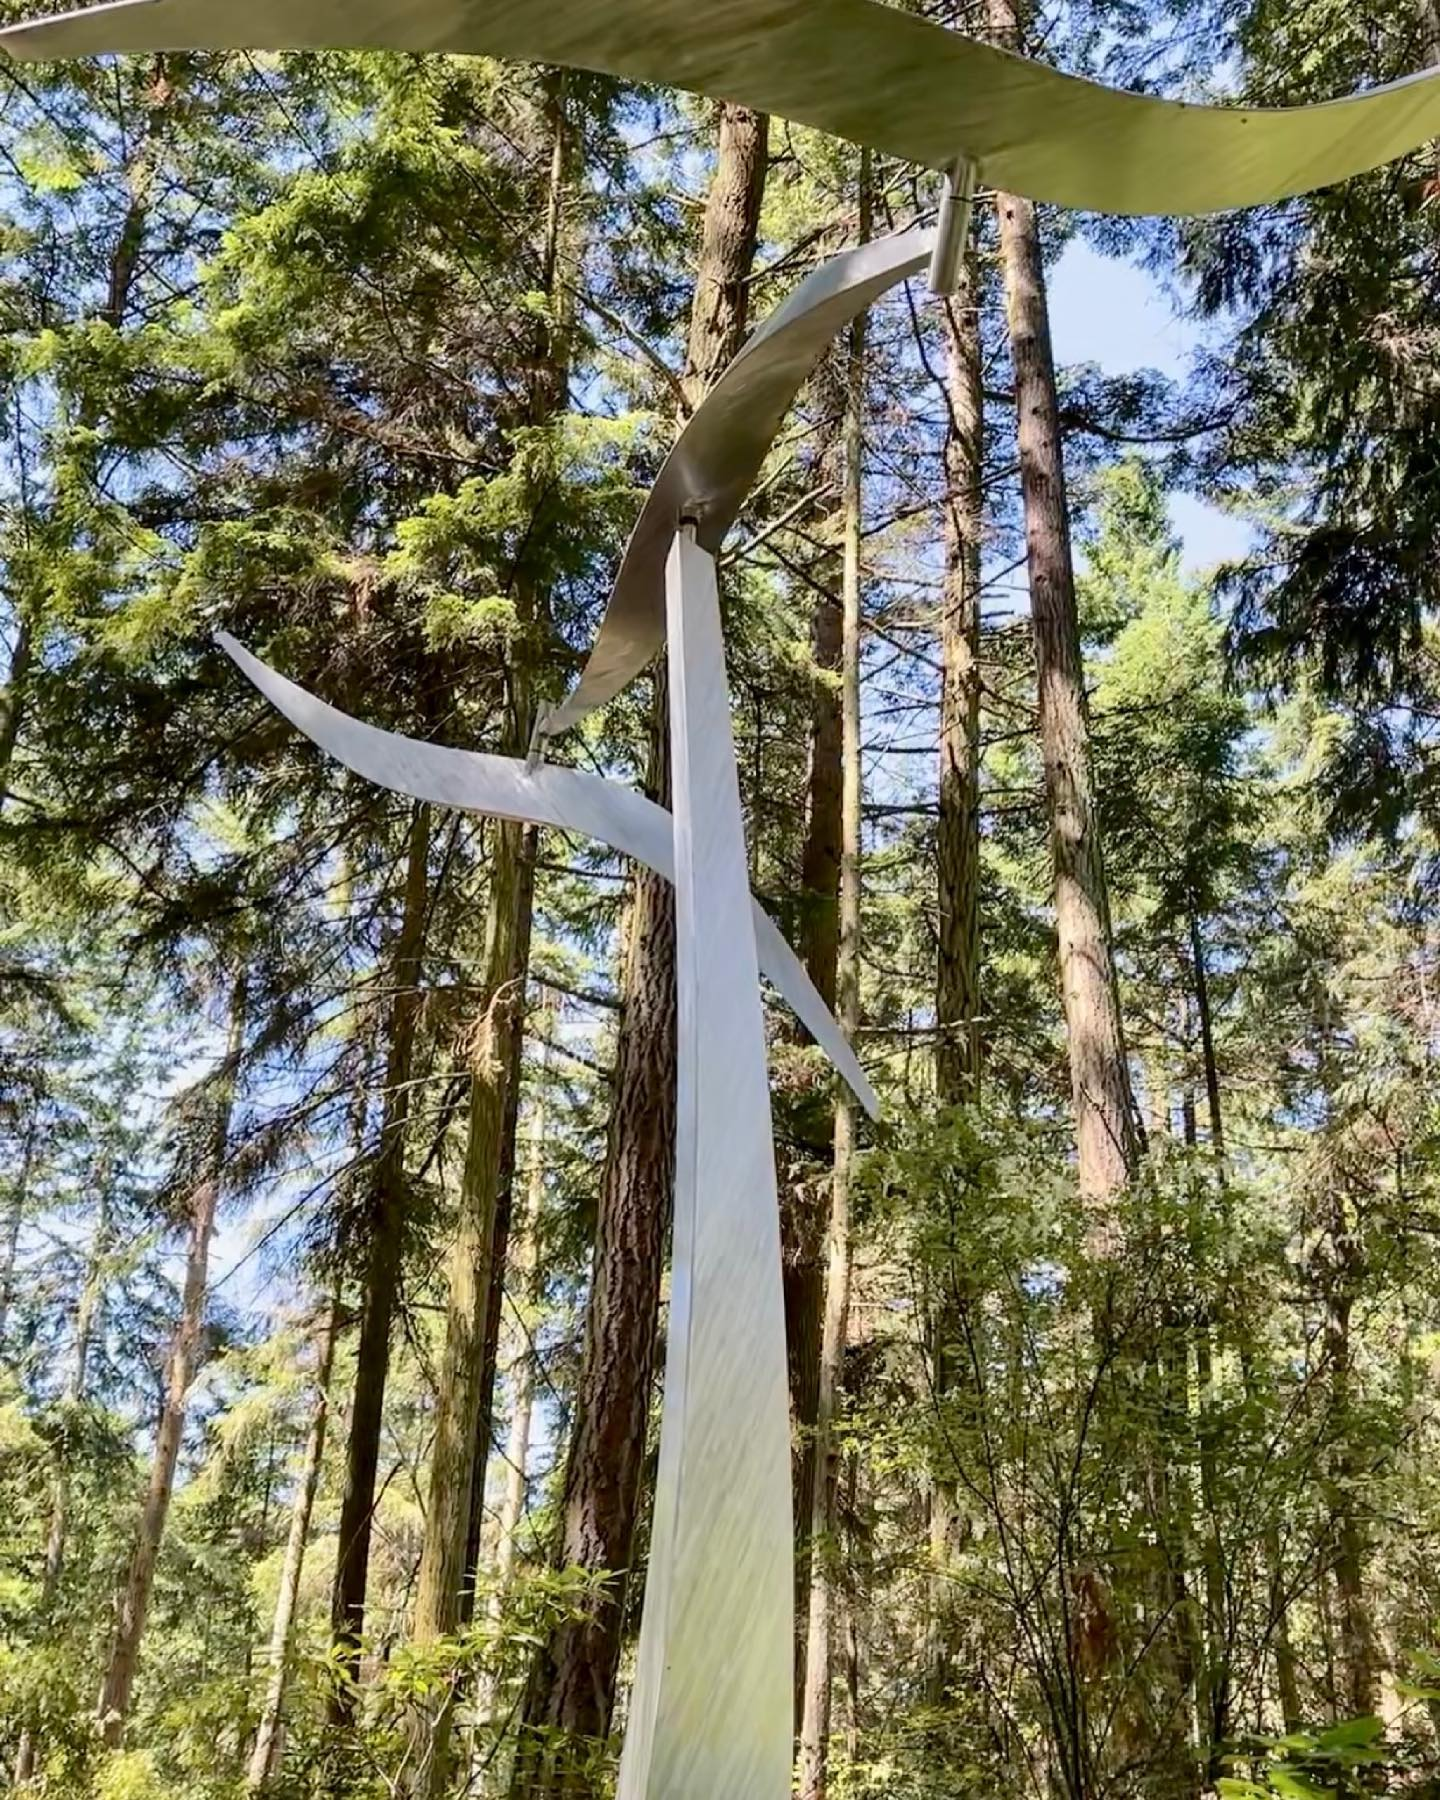 Wind Shear by Jeff Kahn at Price Sculpture Forest park garden in Coupeville Whidbey Island - photo by Sharon Kurtz of Dallas TX